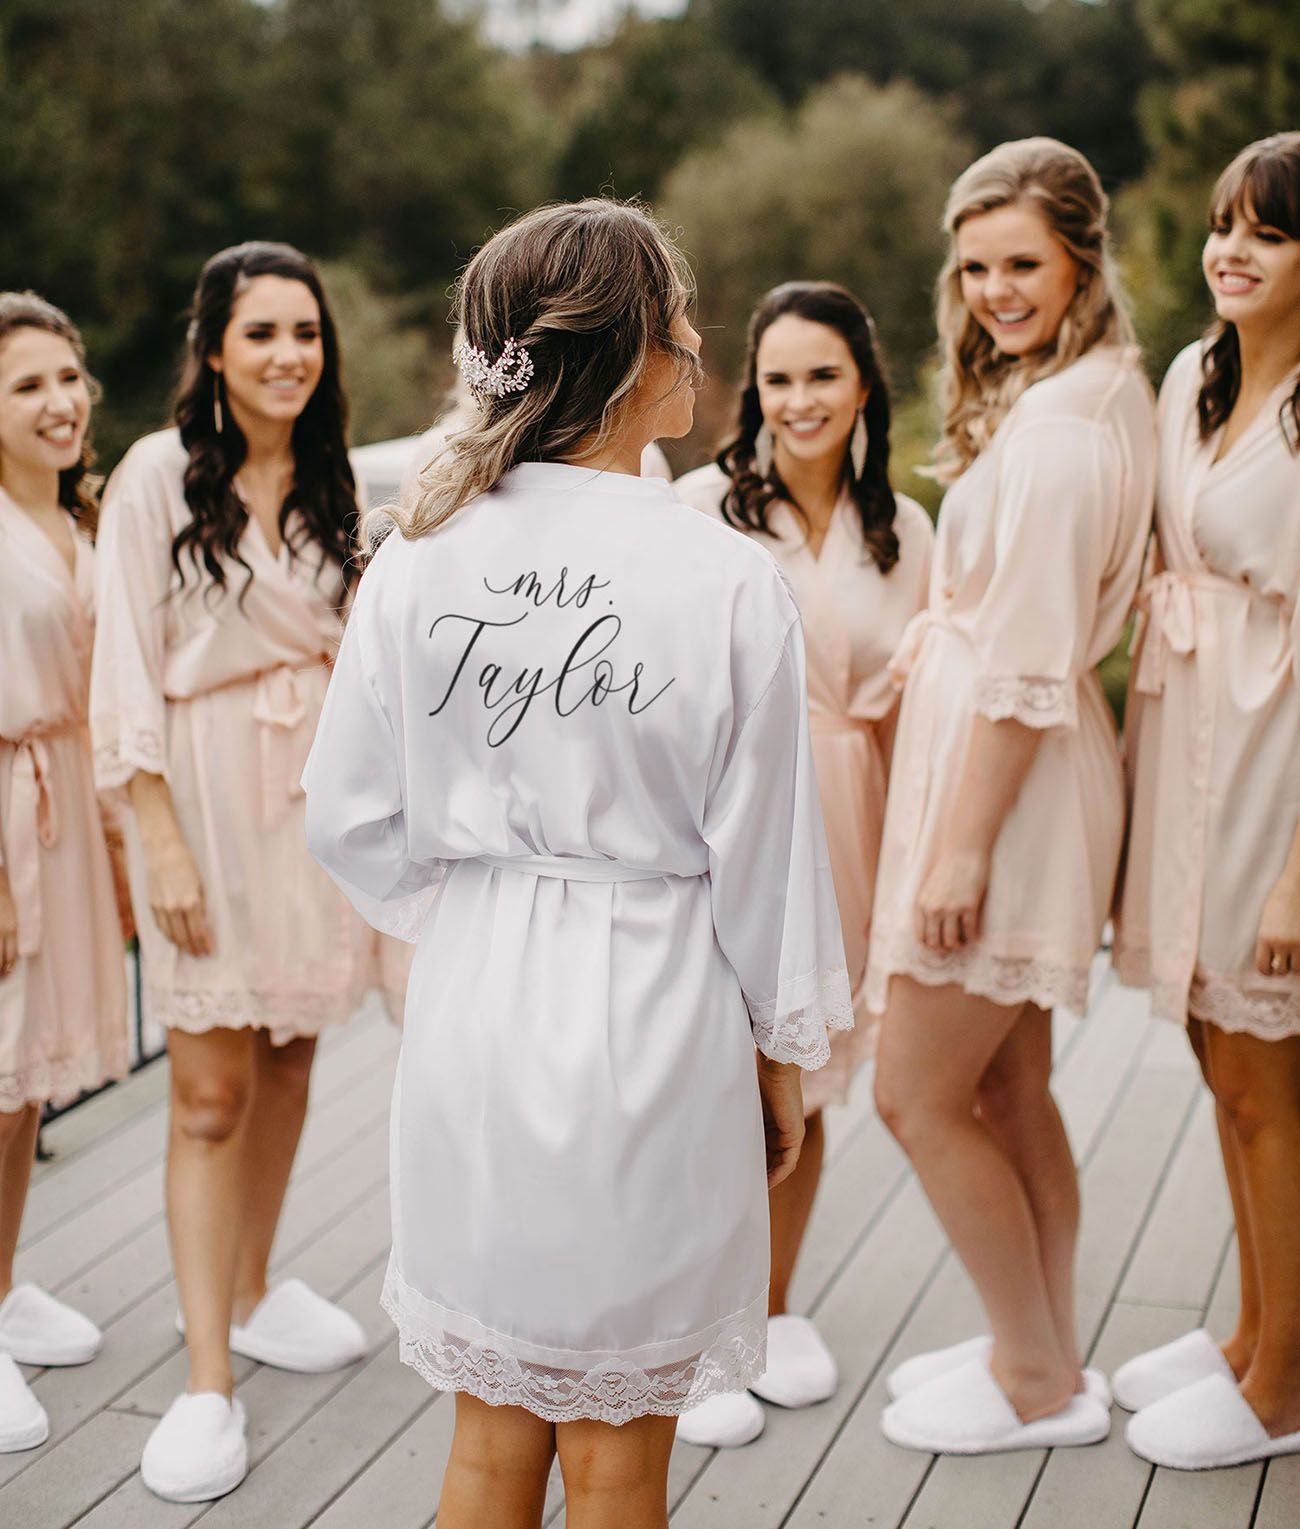 Bridesmaids Getting Ready Robes From Wedding Favorites Bridesmaid Get Ready Outfit Bridal Party Getting Ready Morning Wedding